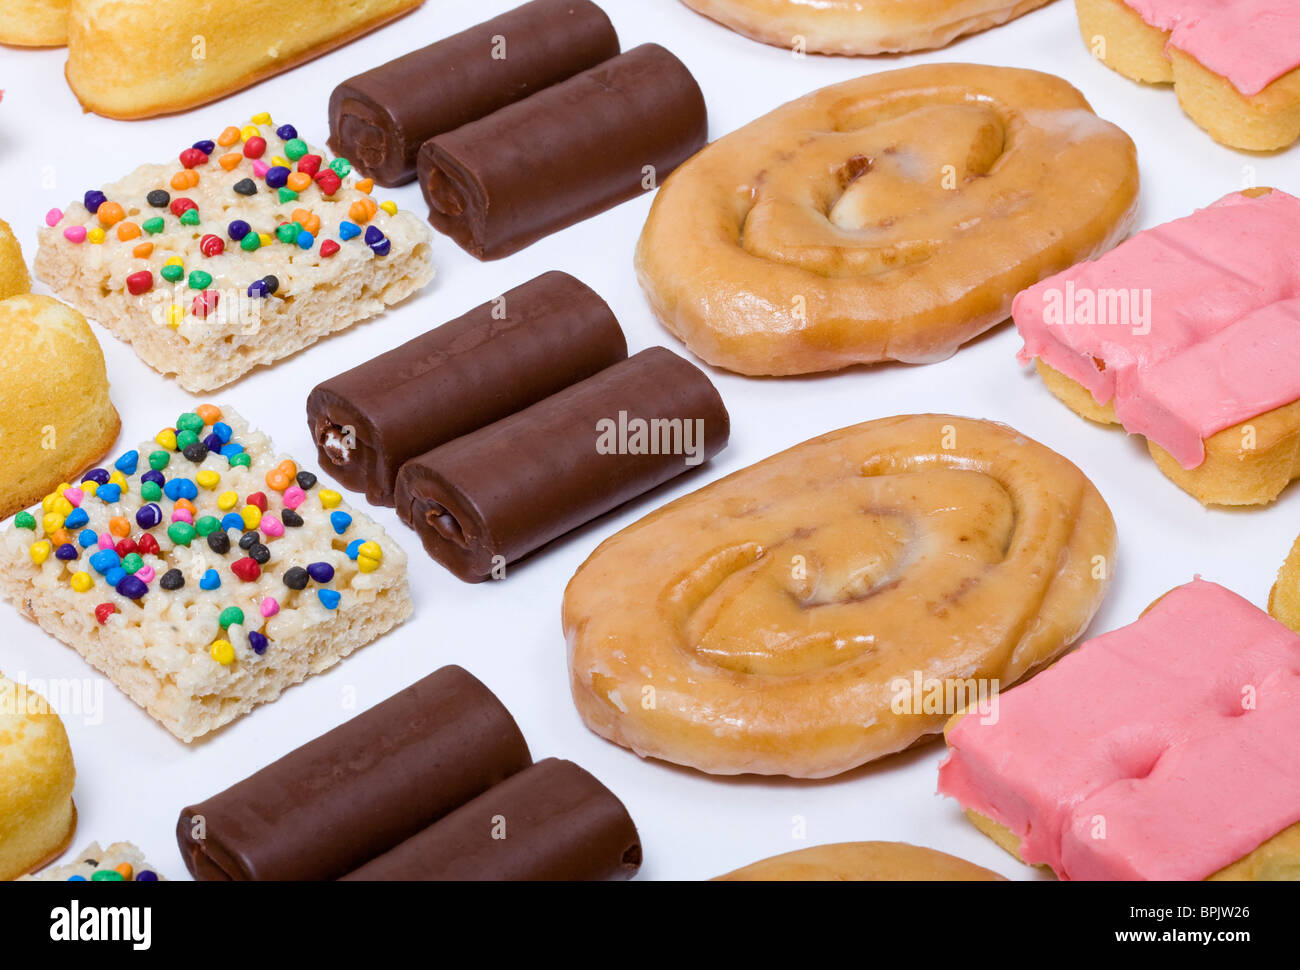 An assortment of junk food items.  - Stock Image